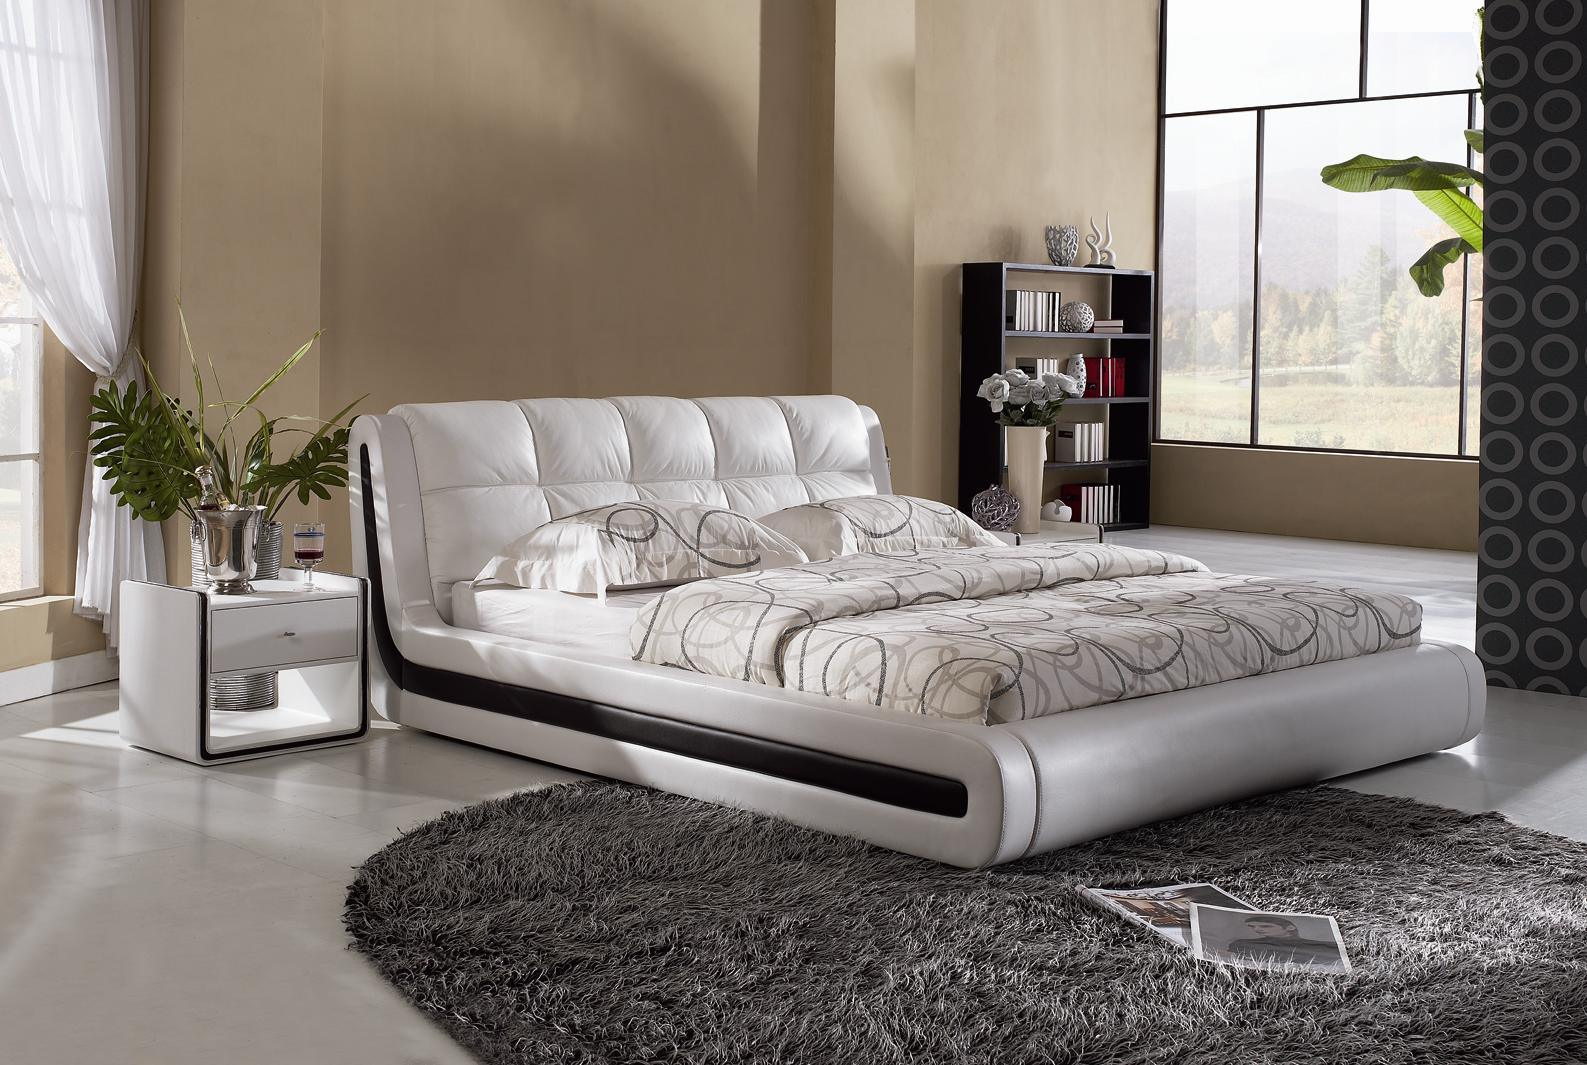 Modern Bed Design (L-8132) - China Bed Design,Bed Designs